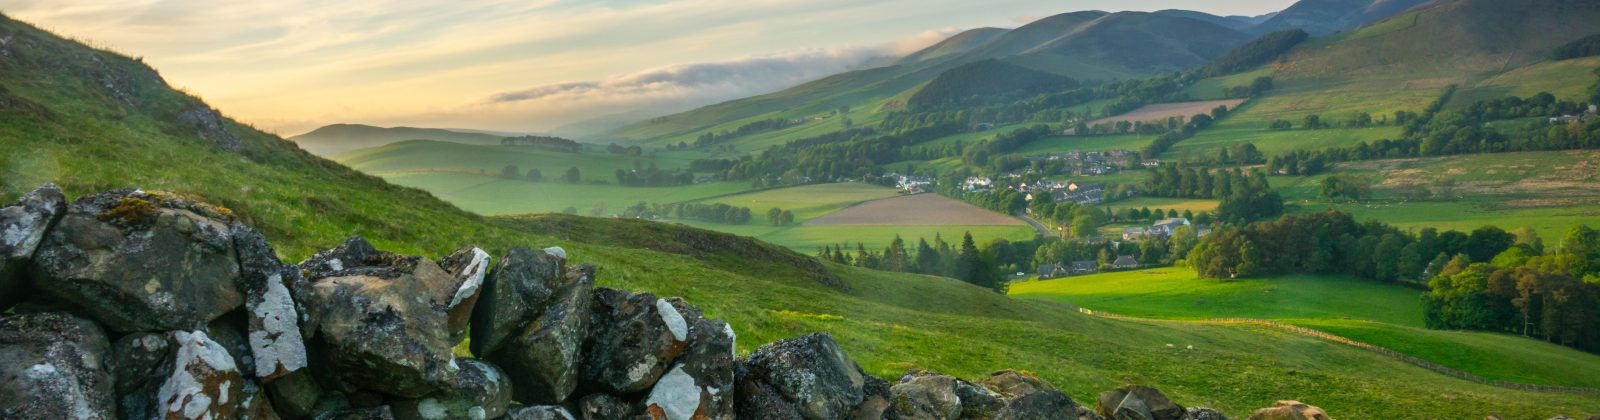 Beautiful Scottish countryside - similar to what I always envisioned it to look like in Brigadoon!